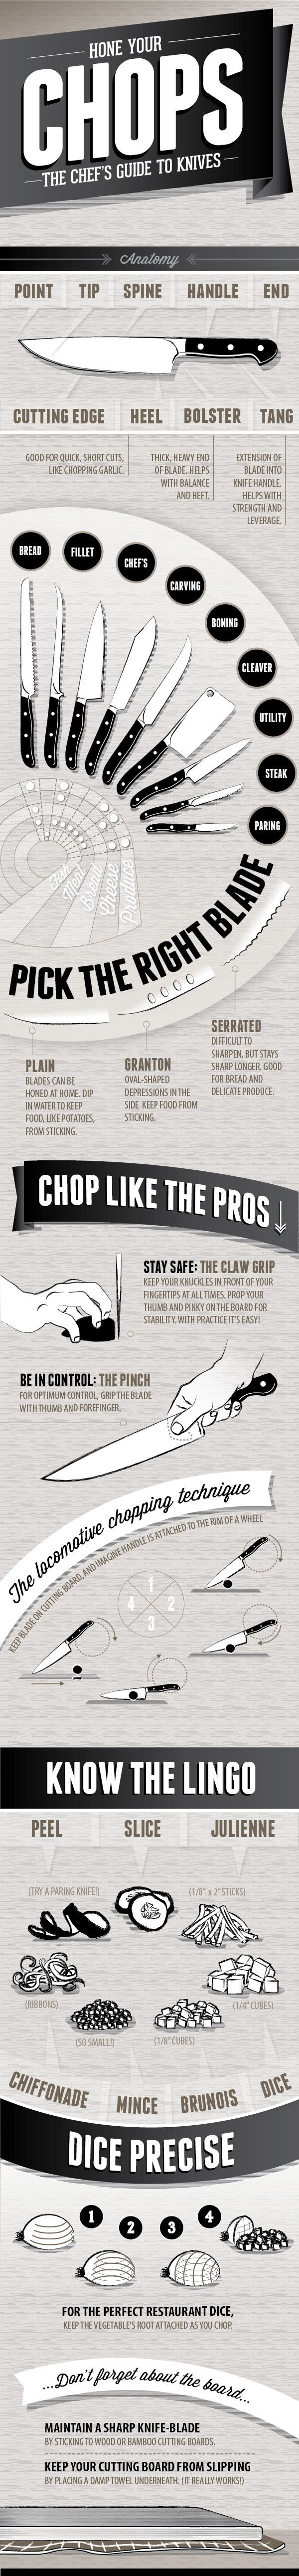 A Chef's Guide to Knives